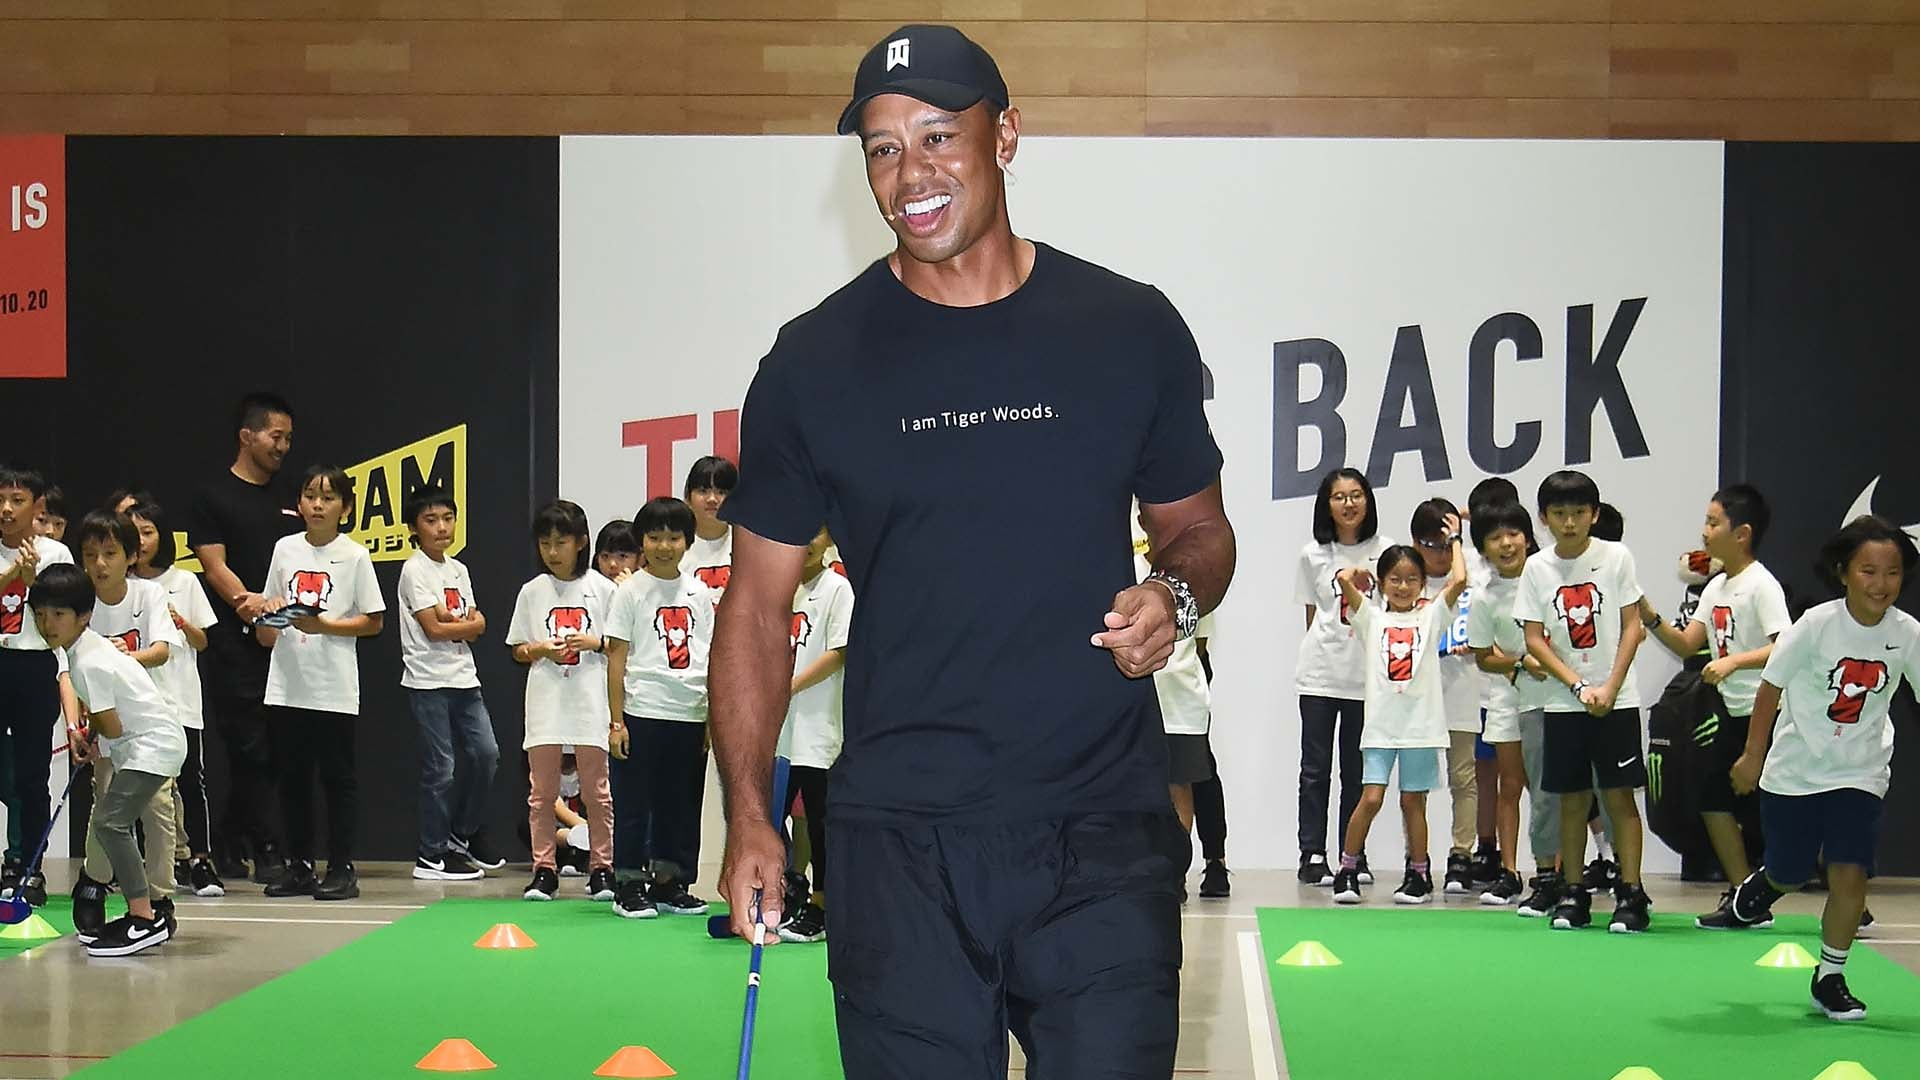 Tiger is back: Woods entertains fans at Nike store in Tokyo